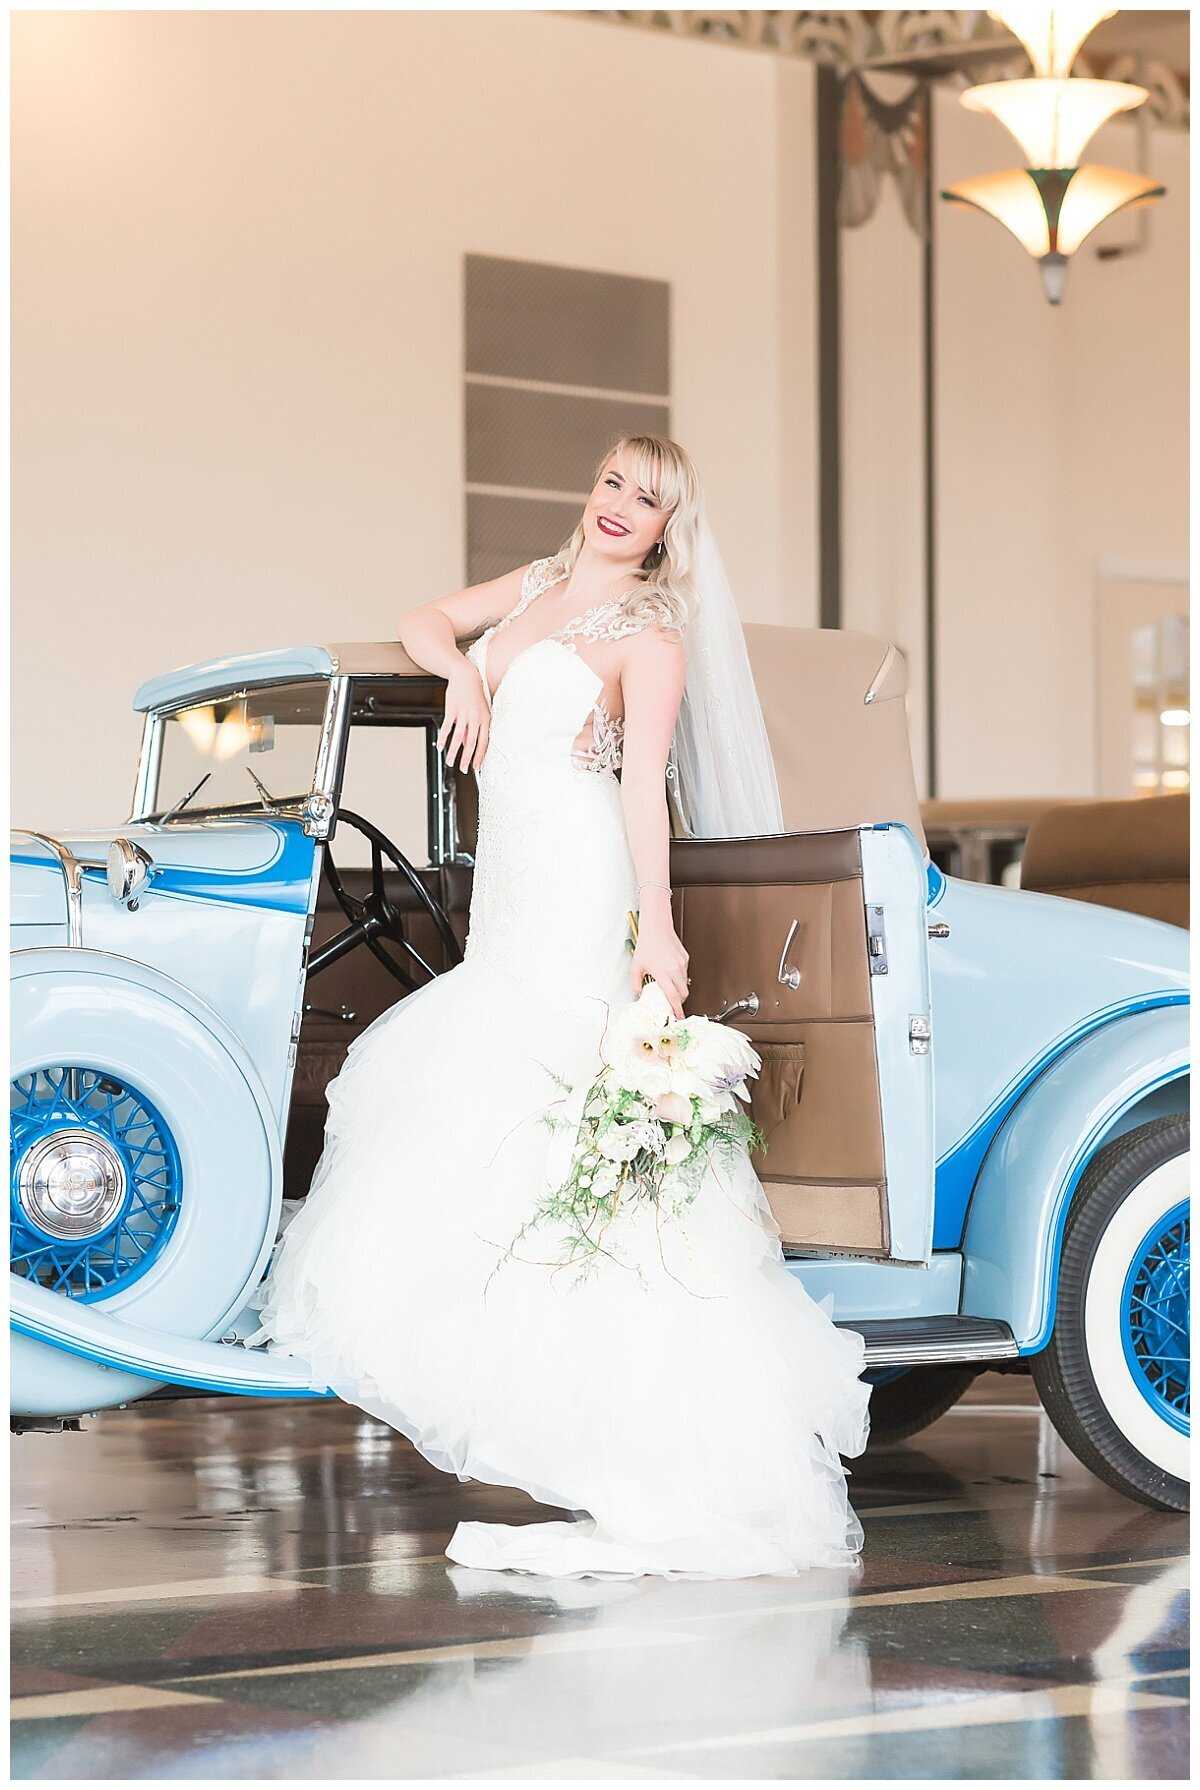 Auburn Cord Duesenberg Museum wedding photo by Simply Seeking Photography_0673